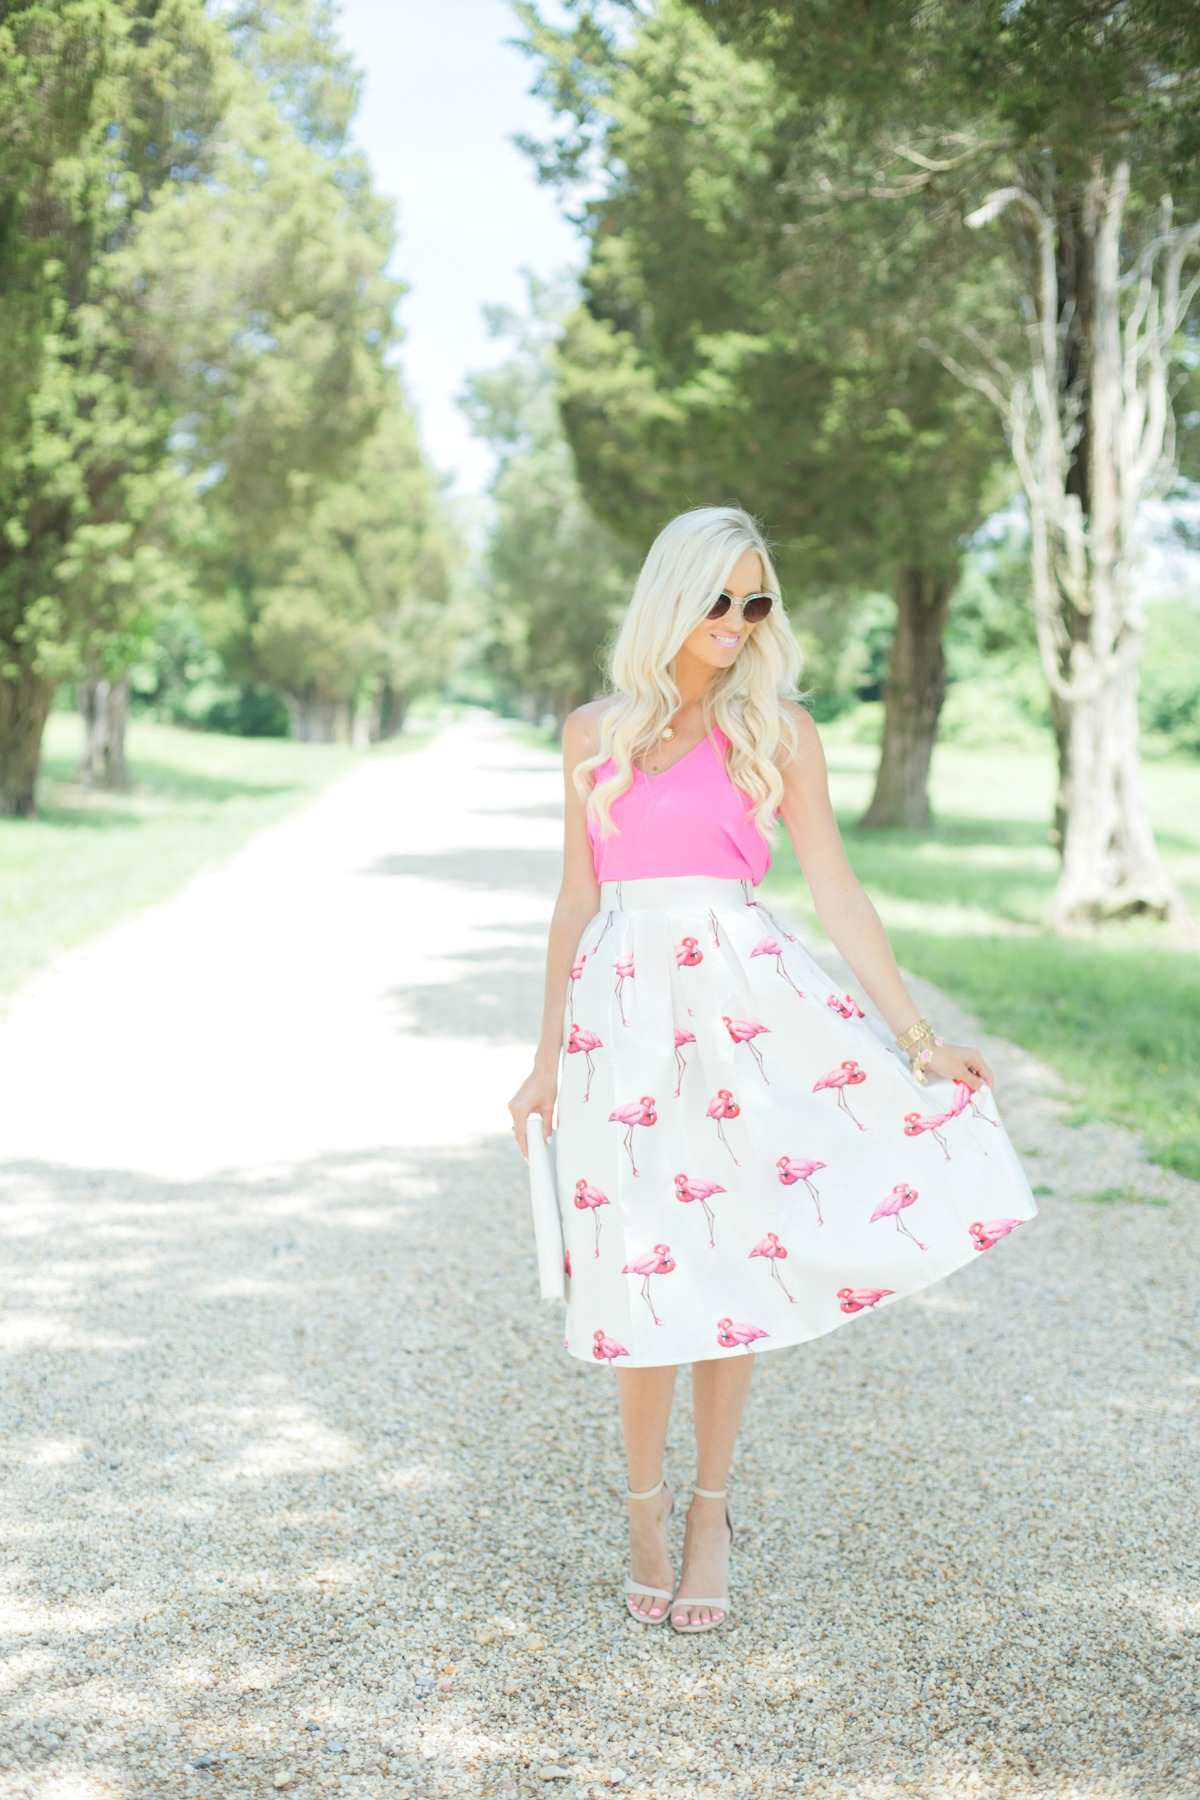 McKenna_Bleu_Fashion_Style_Travel_Blogger_Blog_DC_Summer_photo-10